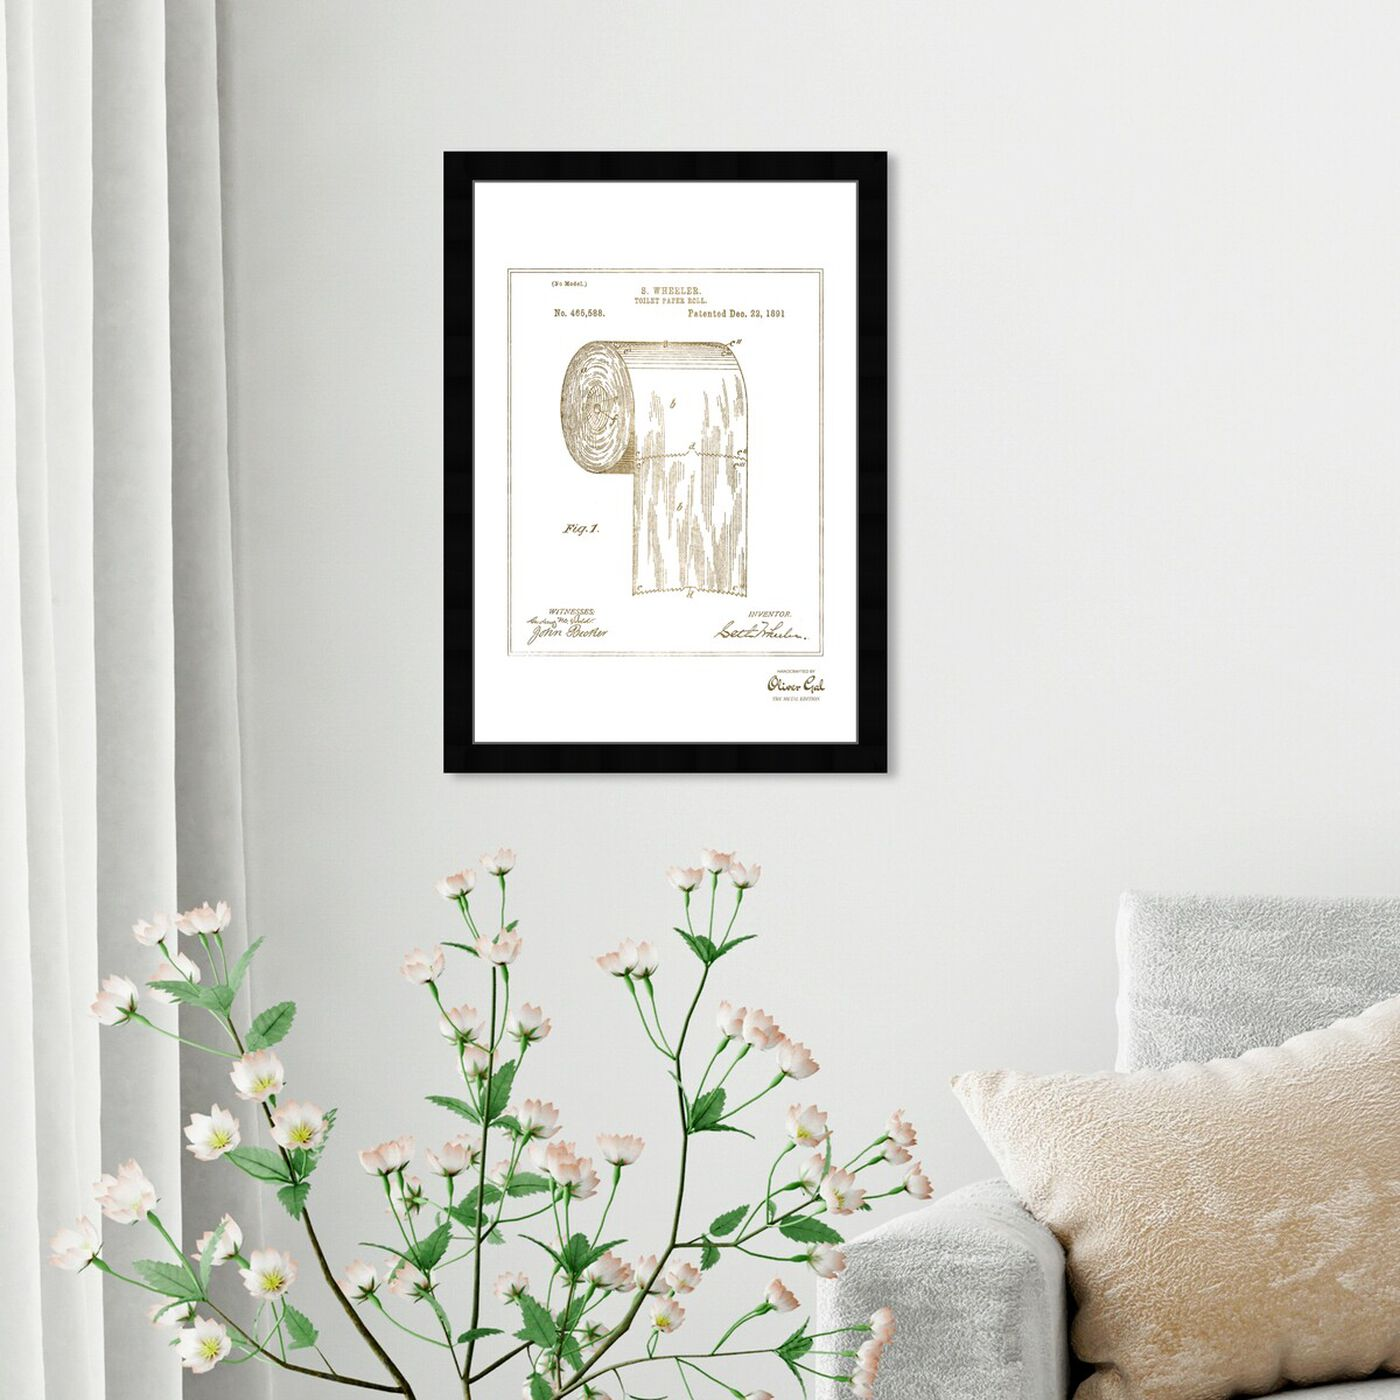 Hanging view of Toilet-paper roll 1891 I Gold featuring bath and laundry and bath art.